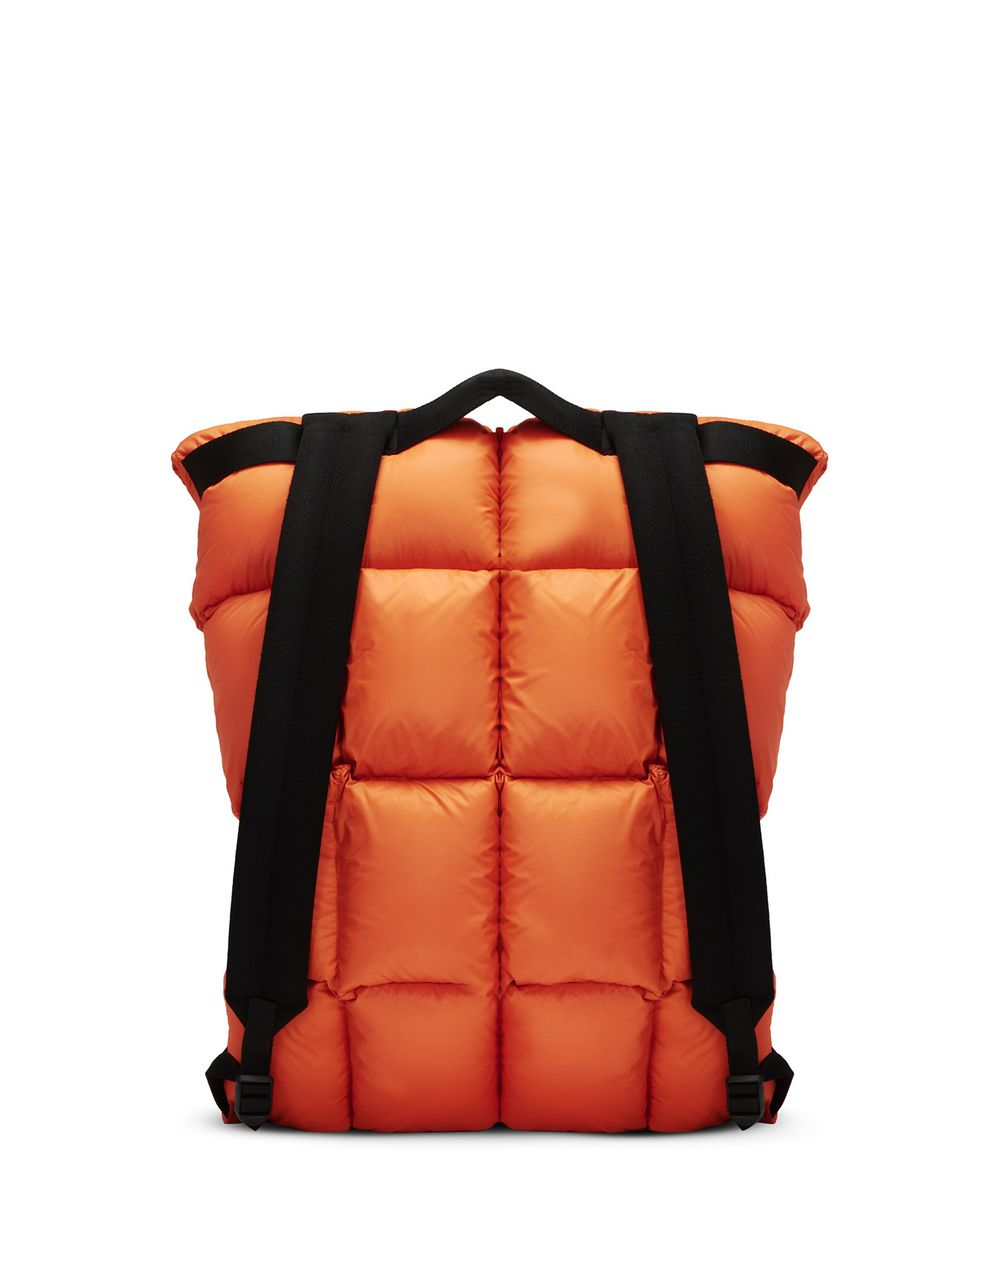 QUILTTED BACKPACK - Lanvin